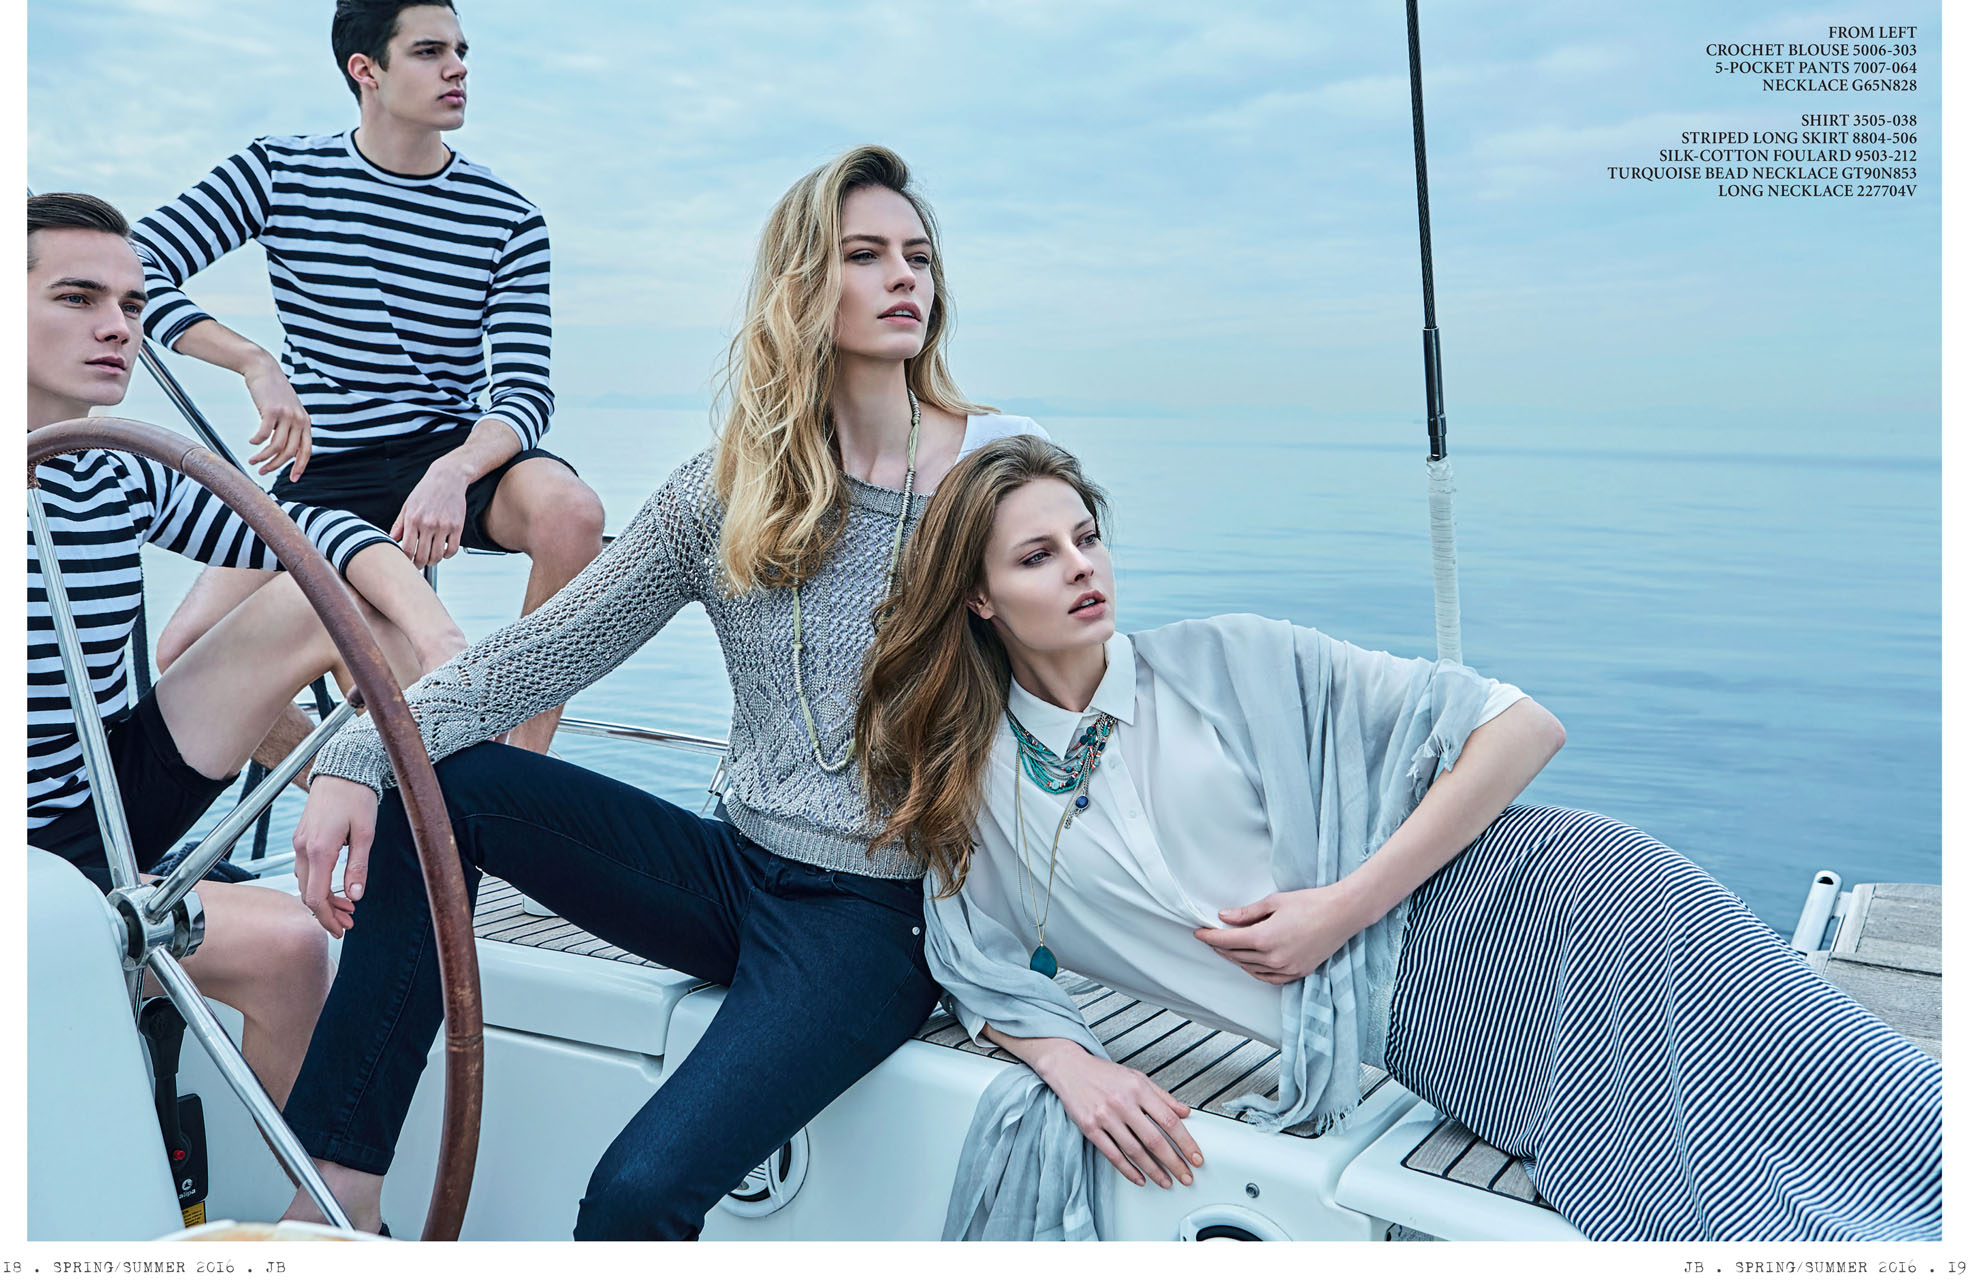 Sail away: Milou, Vita, Nikolay & Christos for Julia Bergovich.